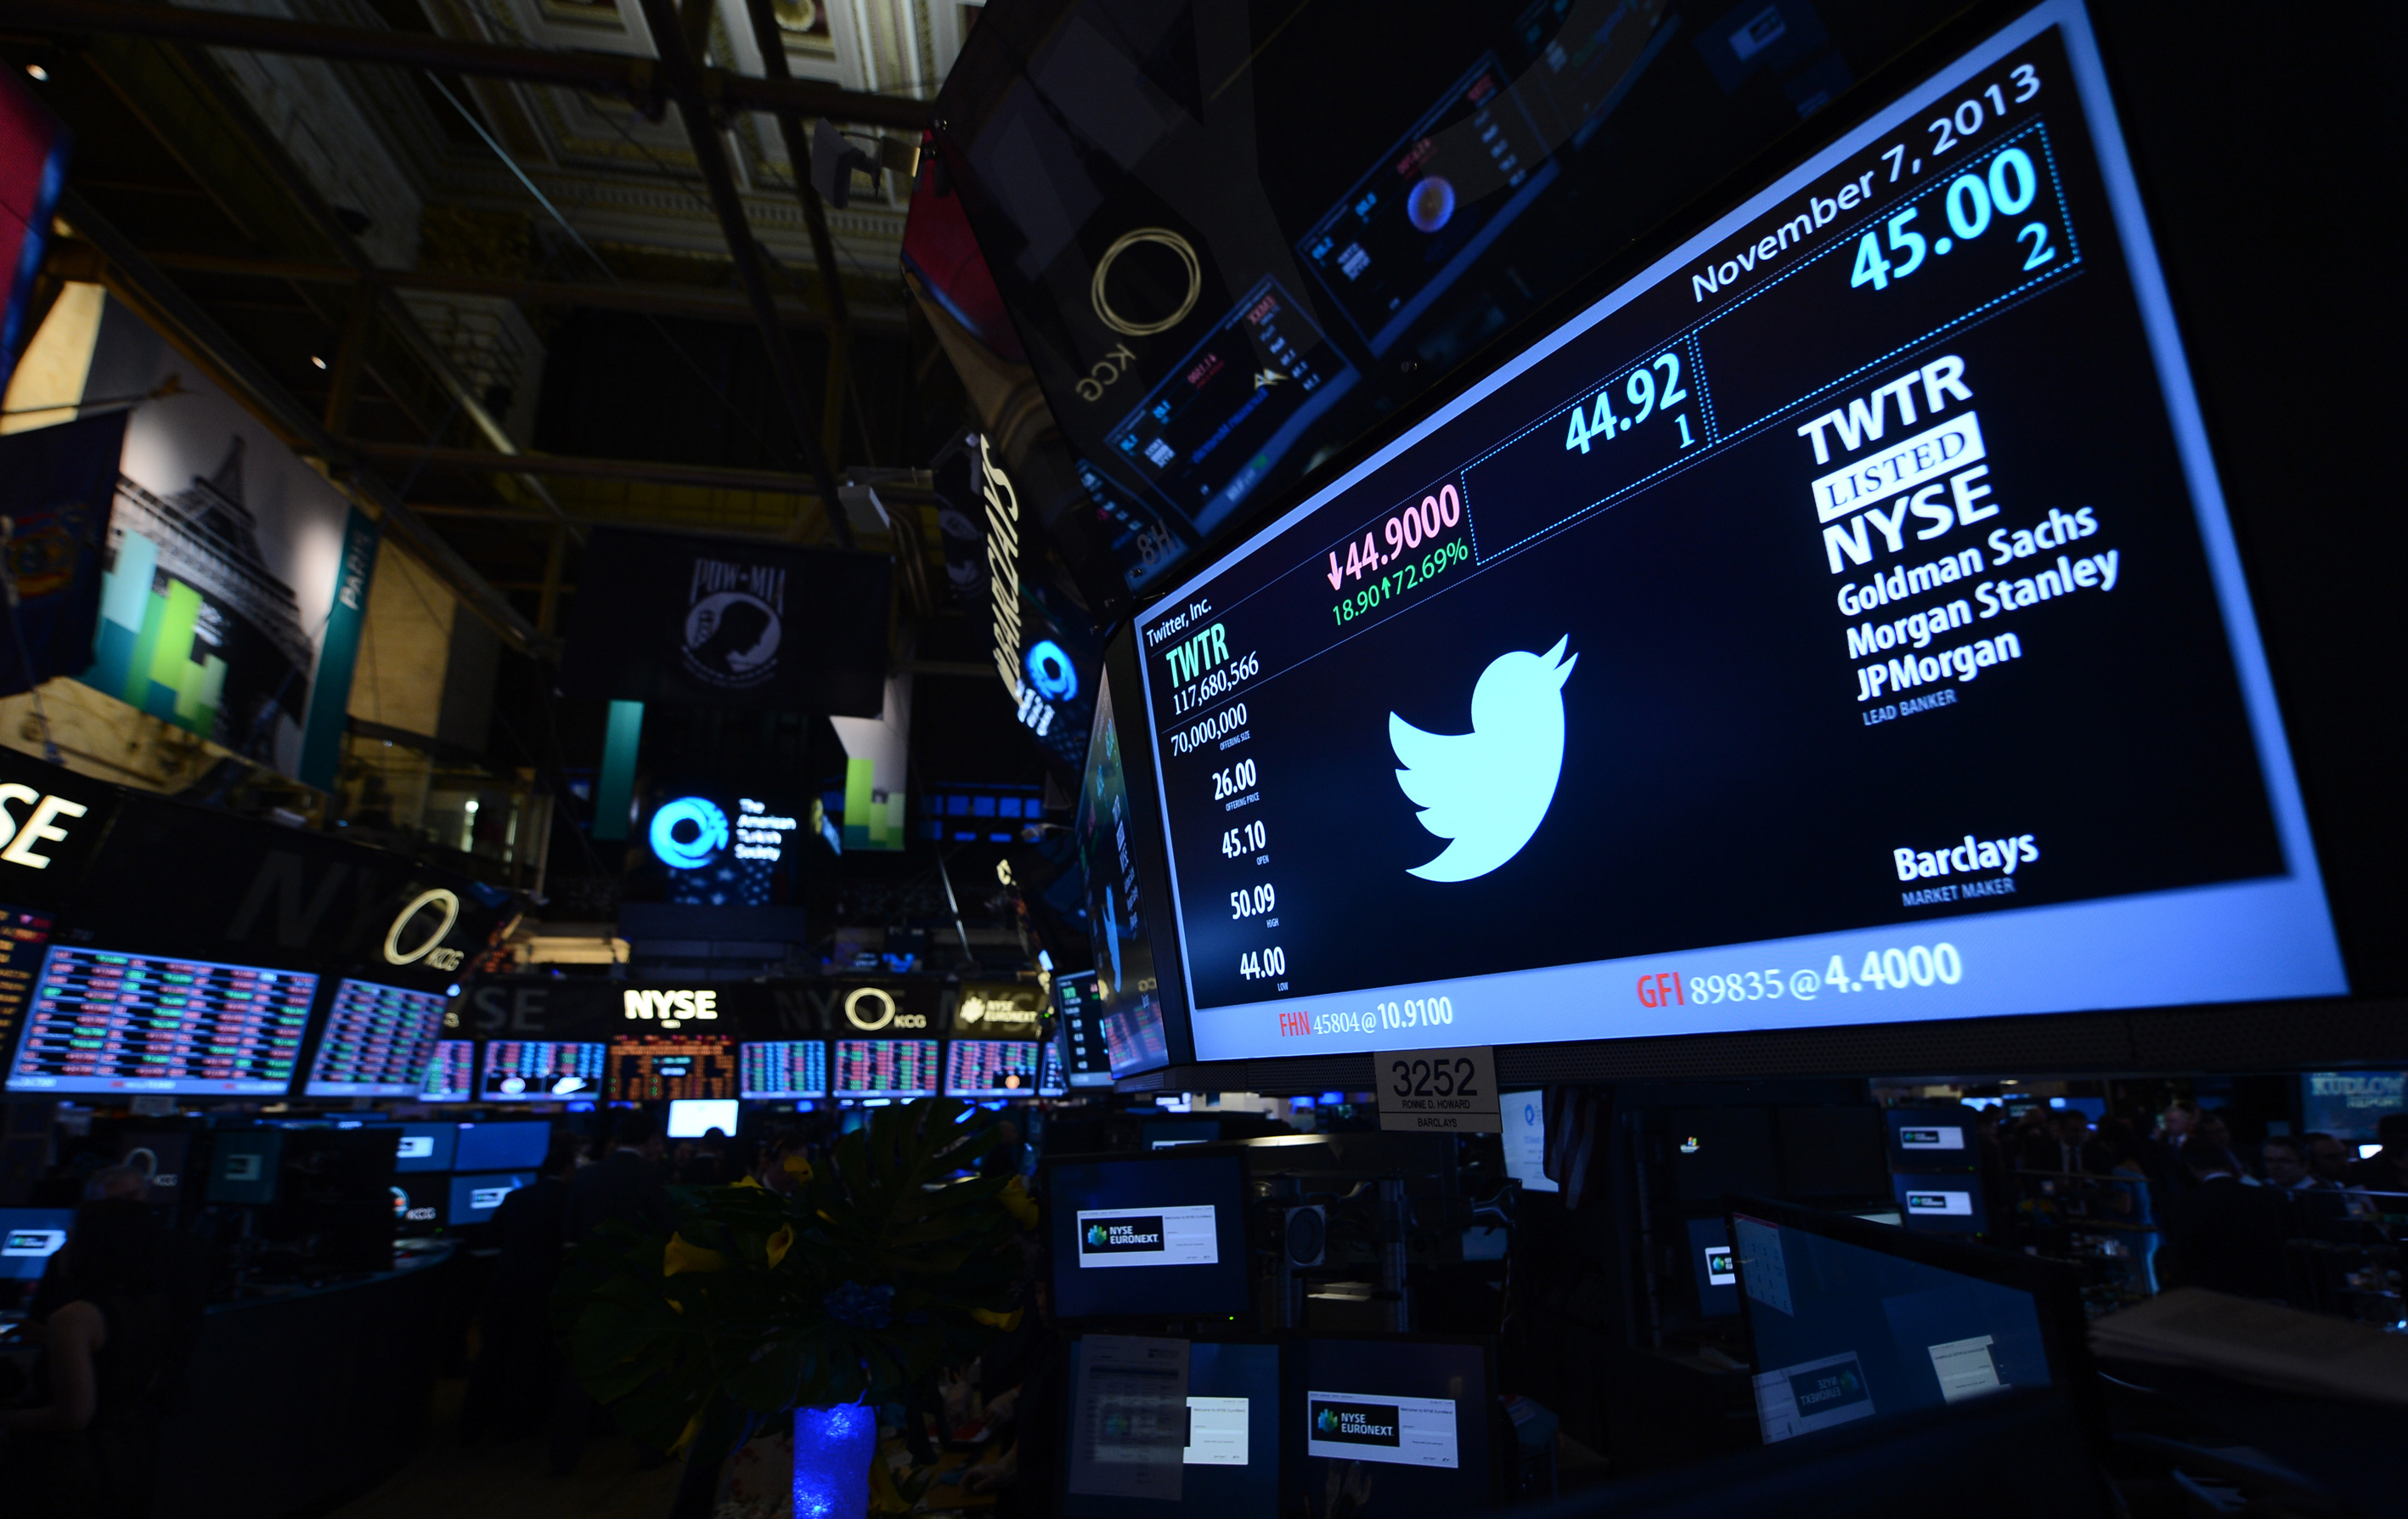 Twitter shares have closed at $44.90 a share on its first day of trading, 73 percent above its initial offering price on November 7, 2013 in New York.